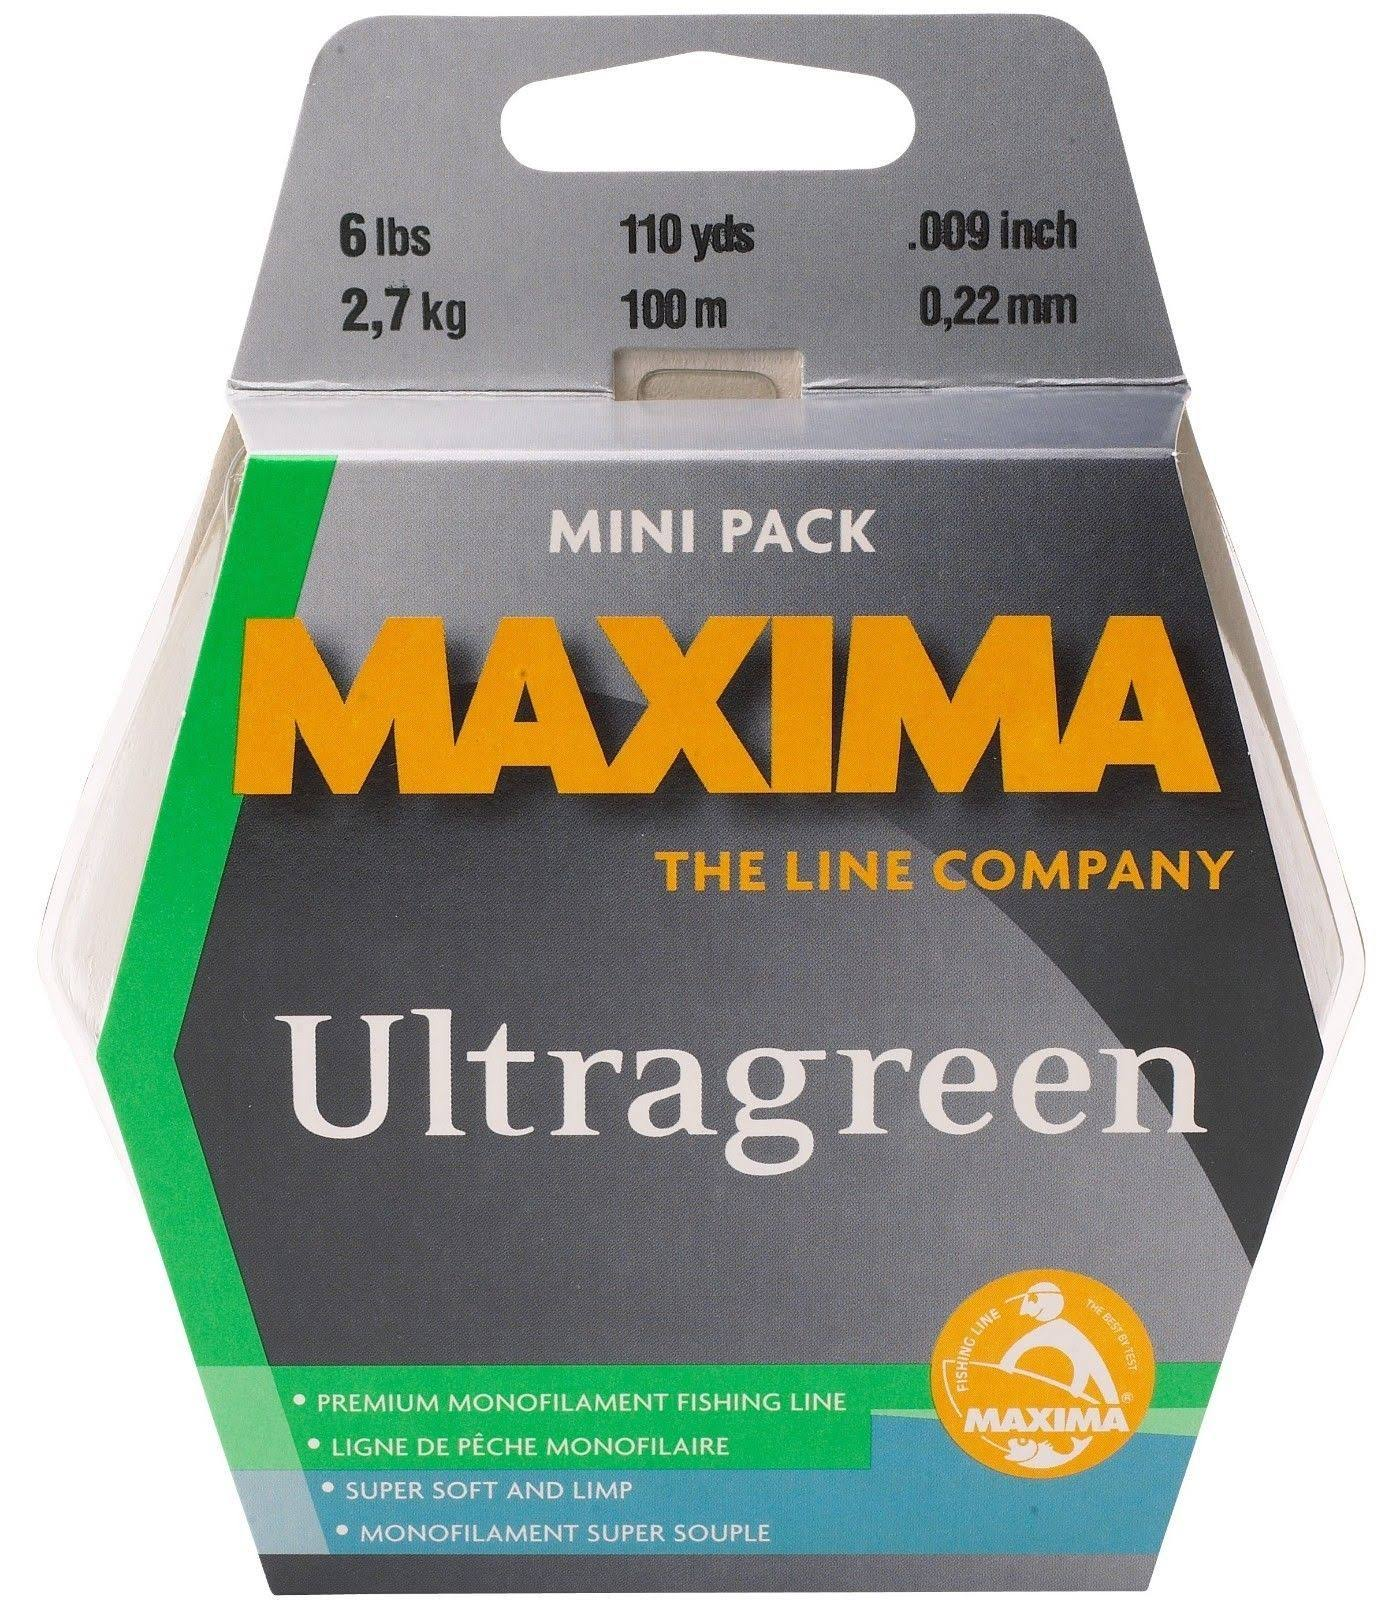 Maxima Fishing Line Mini Pack Ultragreen 6-Pound 110-Yard